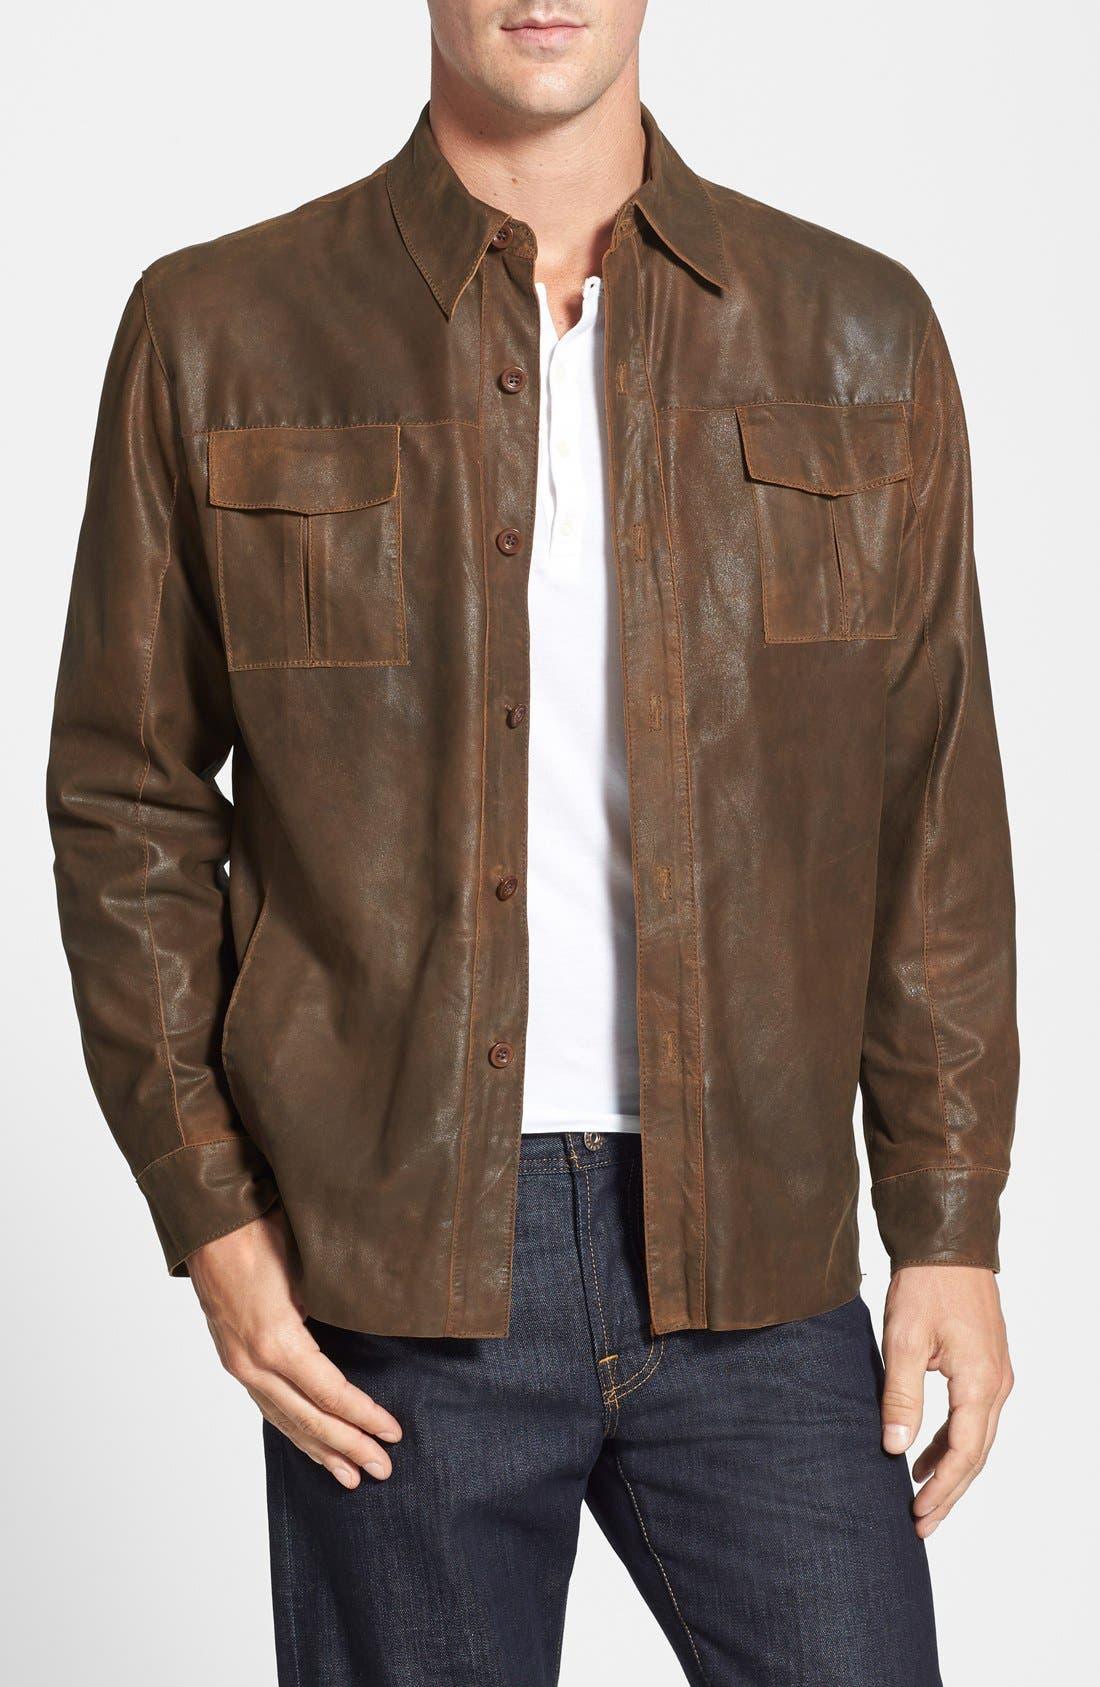 Alternate Image 1 Selected - Missani Le Collezioni Classic Fit Military Shirt Leather Jacket